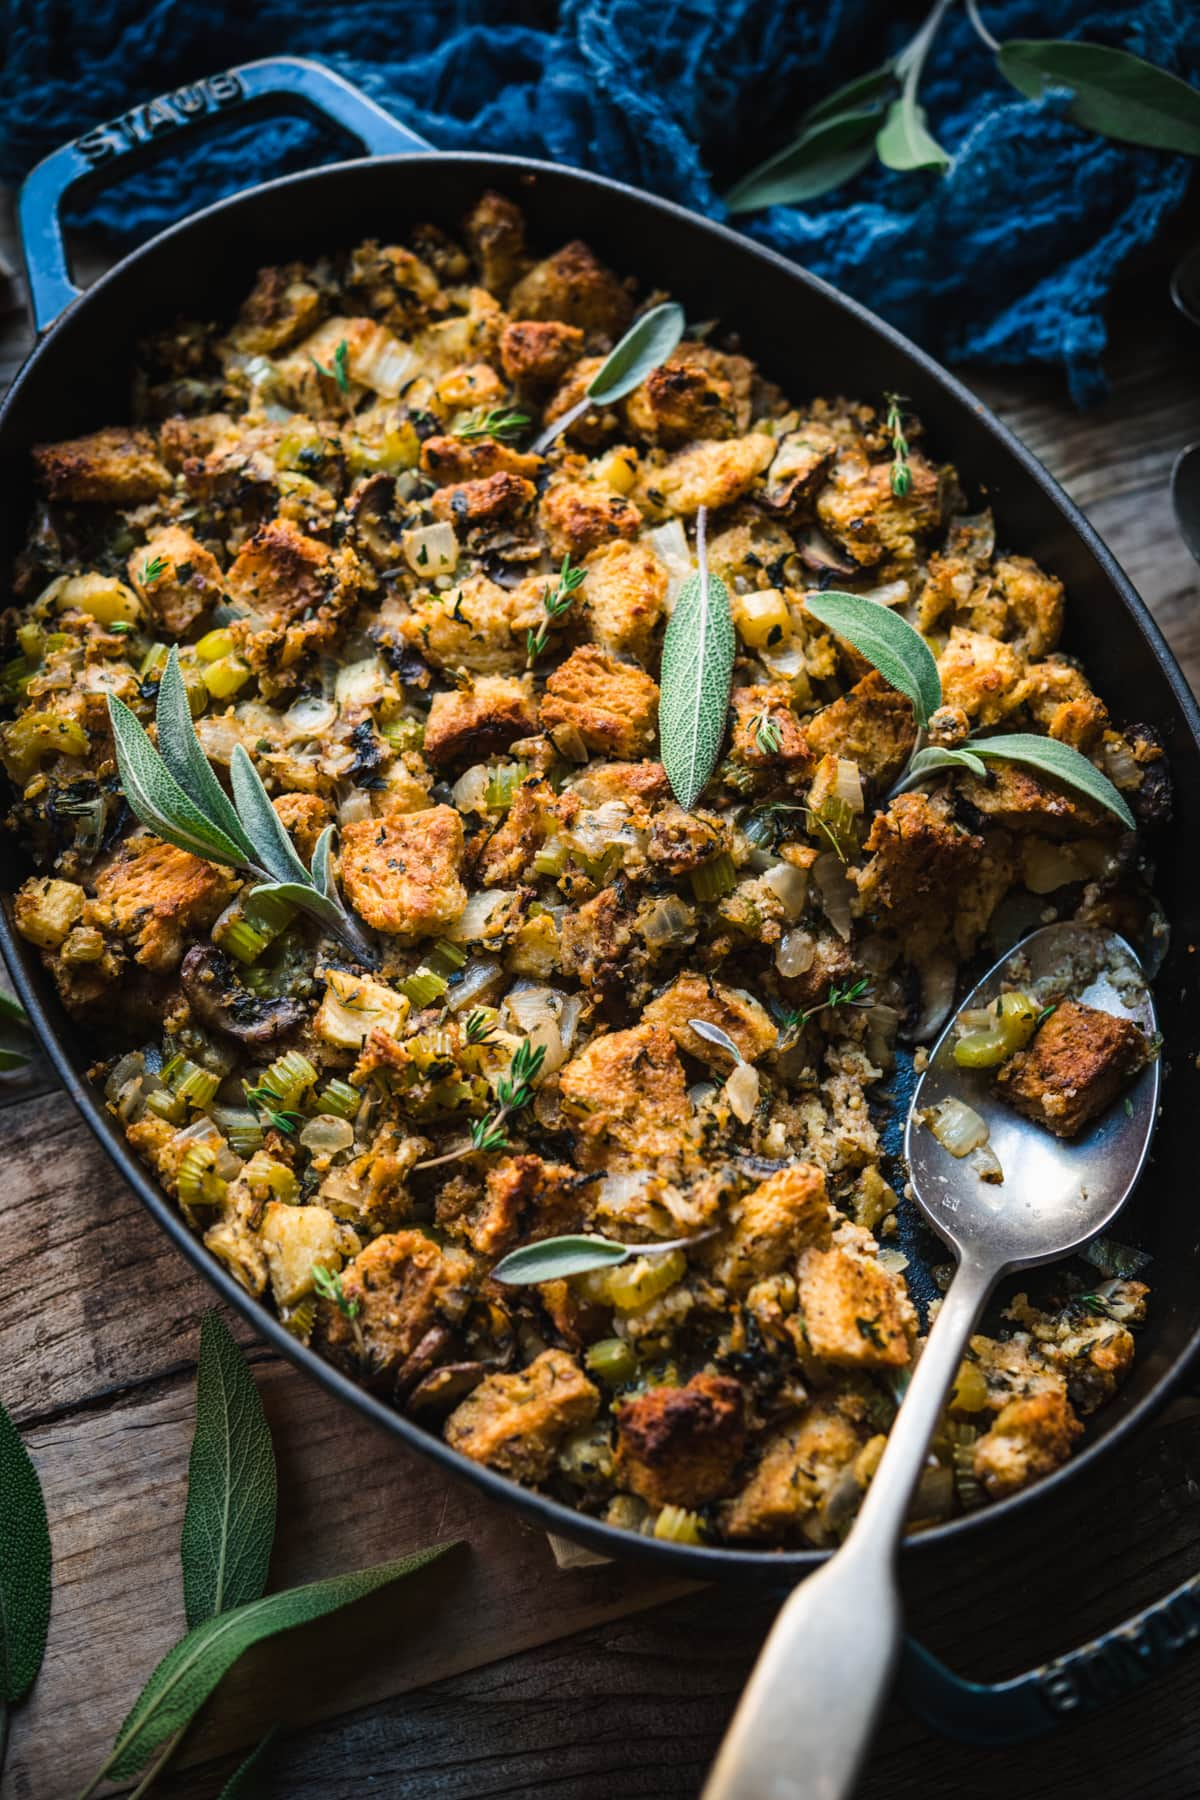 side view of gluten free vegan stuffing in an oval pan with serving spoon.